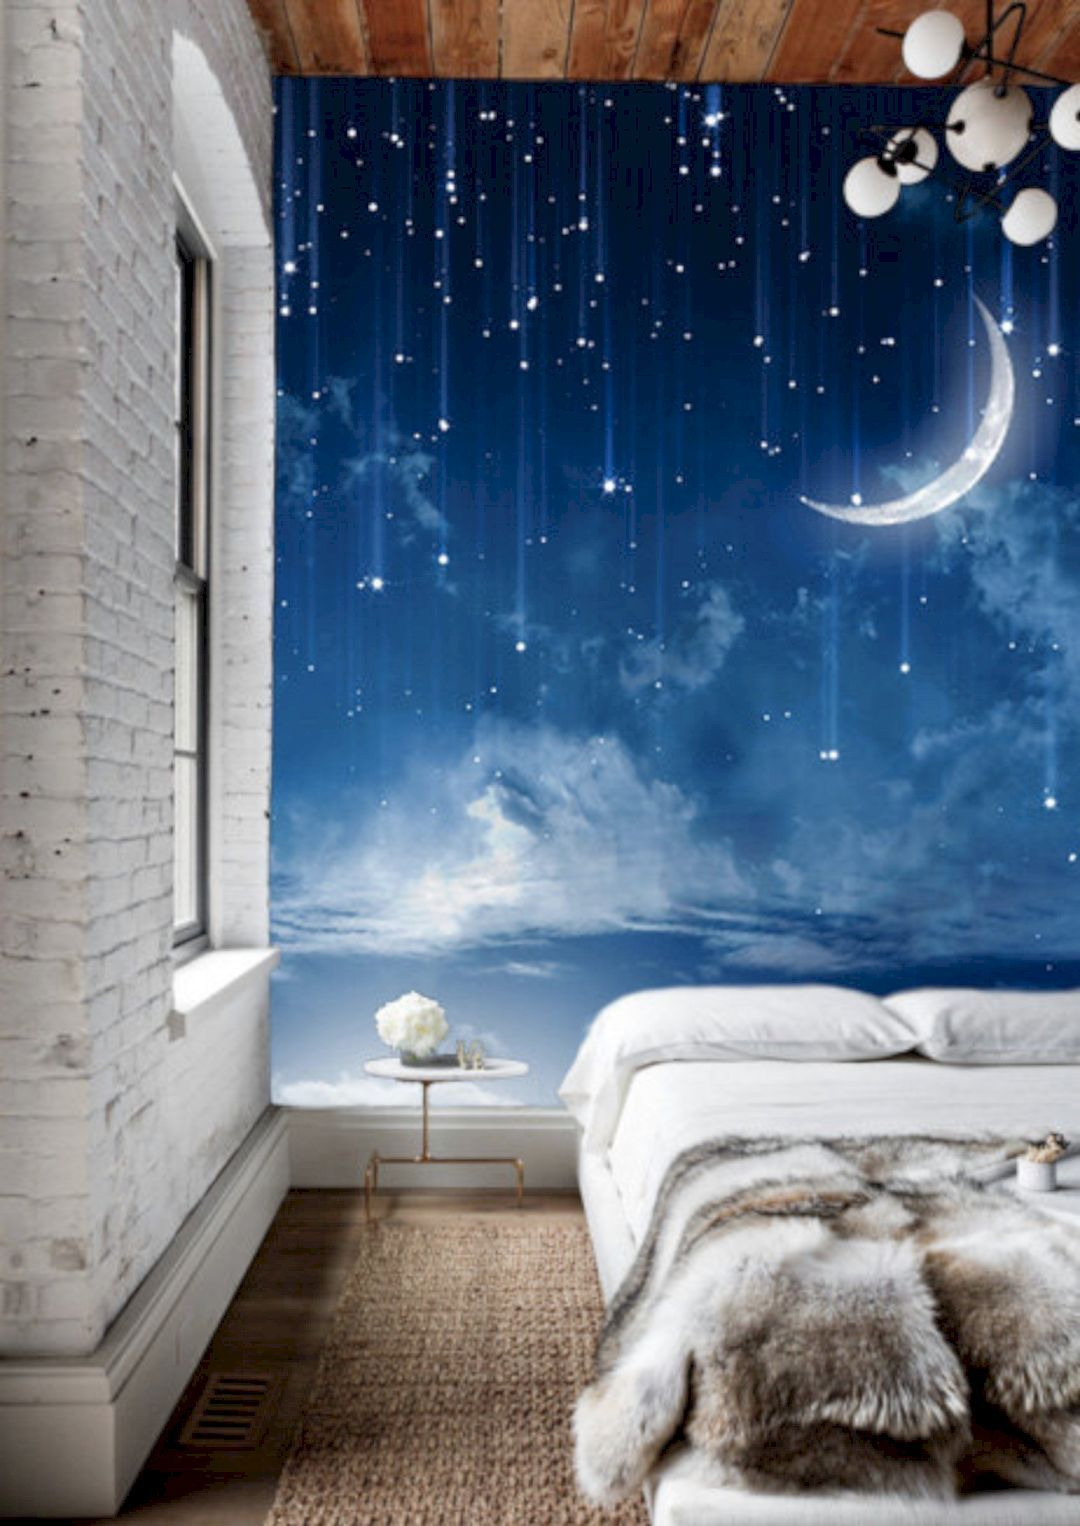 Wall Painting Designs For Bedroom - HD Wallpaper